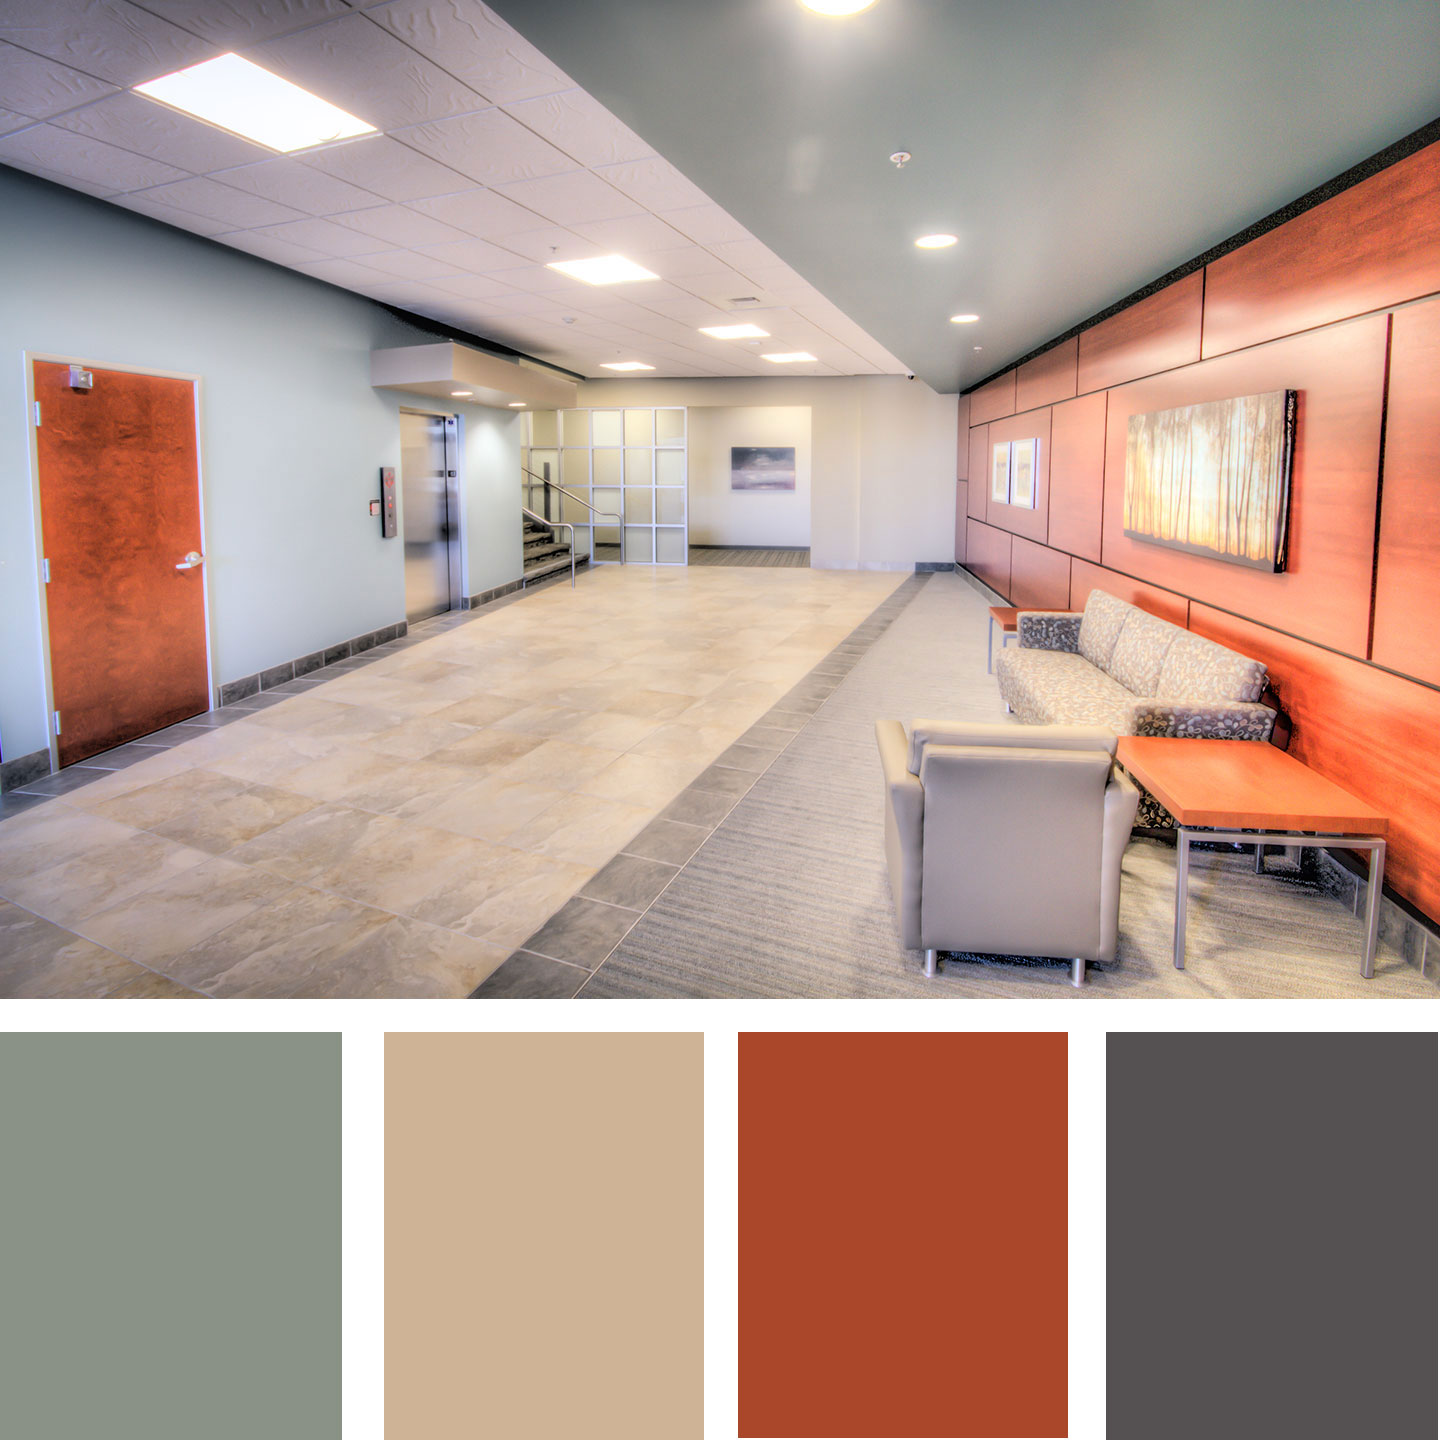 How To Pick a Color Scheme for Your Workplace — Comstock ... Natural Home Design Color Scheme on home design photography, home design texture, home design layout, home design styles, home design borders, home design tools, home design elevations, home design inspiration, home design animation, home design wallpaper, home design windows, home design perspective, home design backgrounds, home design dimensions, home design shapes, home design art, home interior paint color ideas, home design furniture, home design architecture, home design materials,